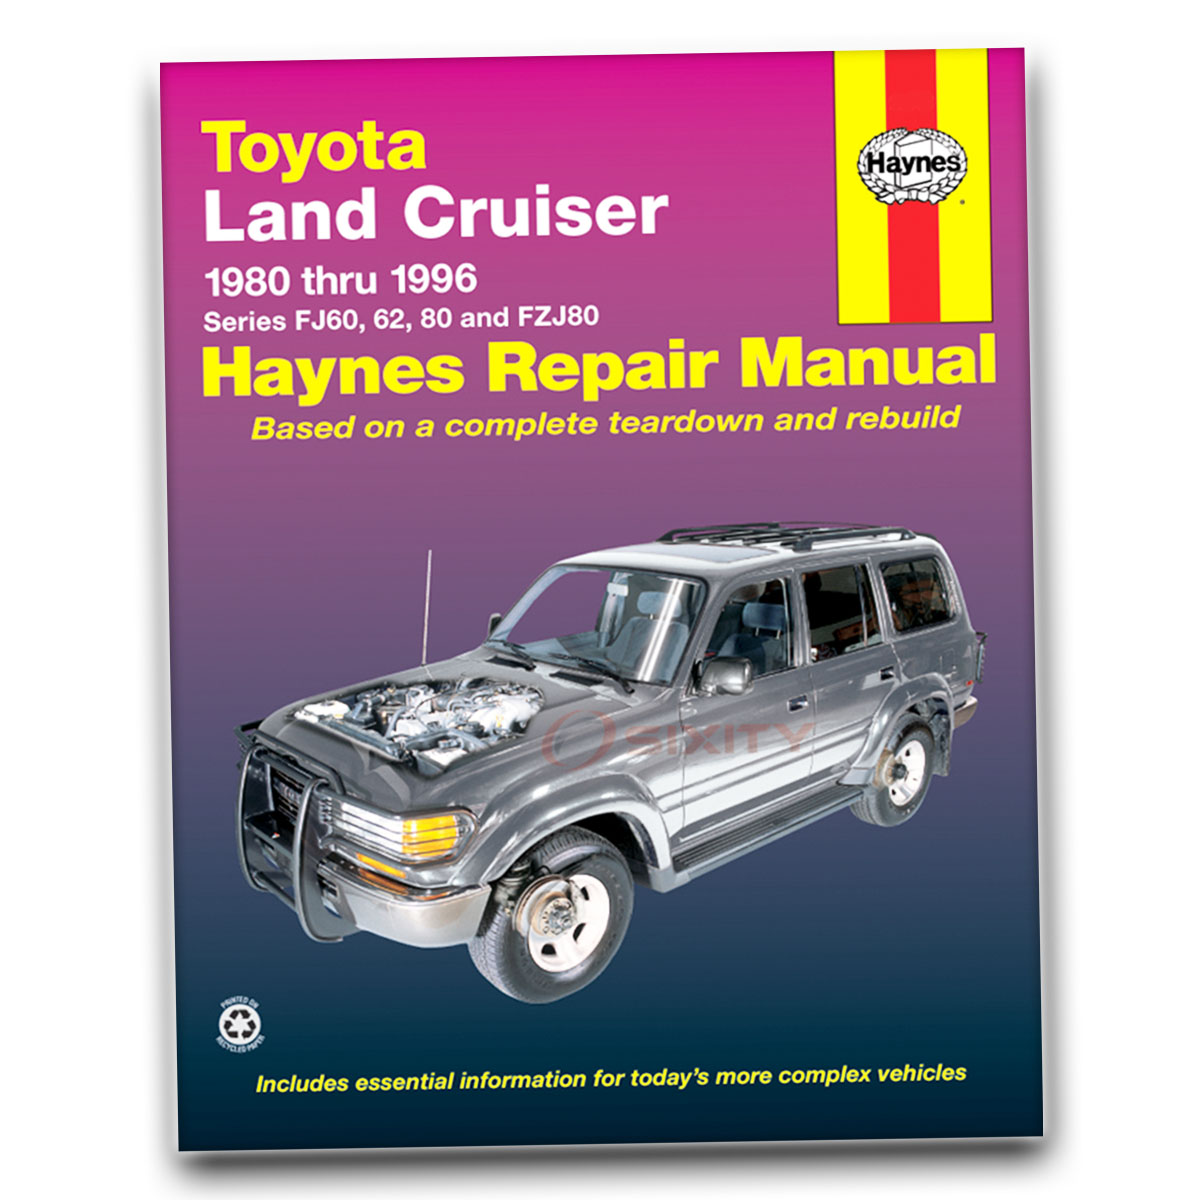 haynes repair manual 92056 for toyota land cruiser fj60 62 80 fzj80 rh ebay com Haynes Repair Manual Spark Plugs Haynes Repair Manuals PDF